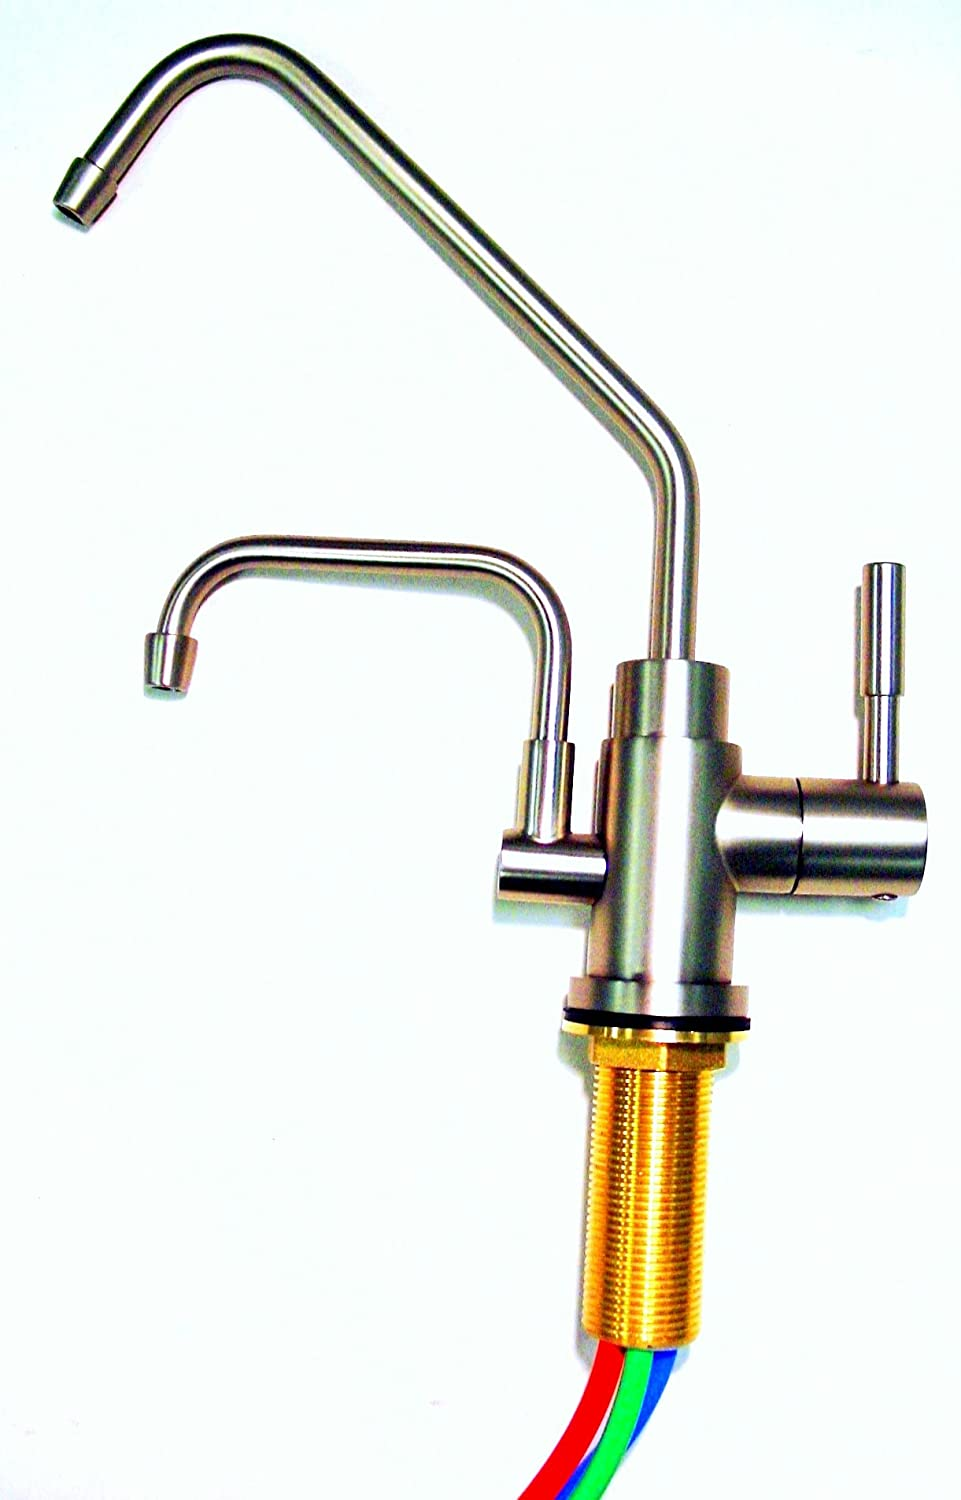 Jupiter Ionizer Undersink Installation Kit - 2 Headed - Brushed Nickel Faucet